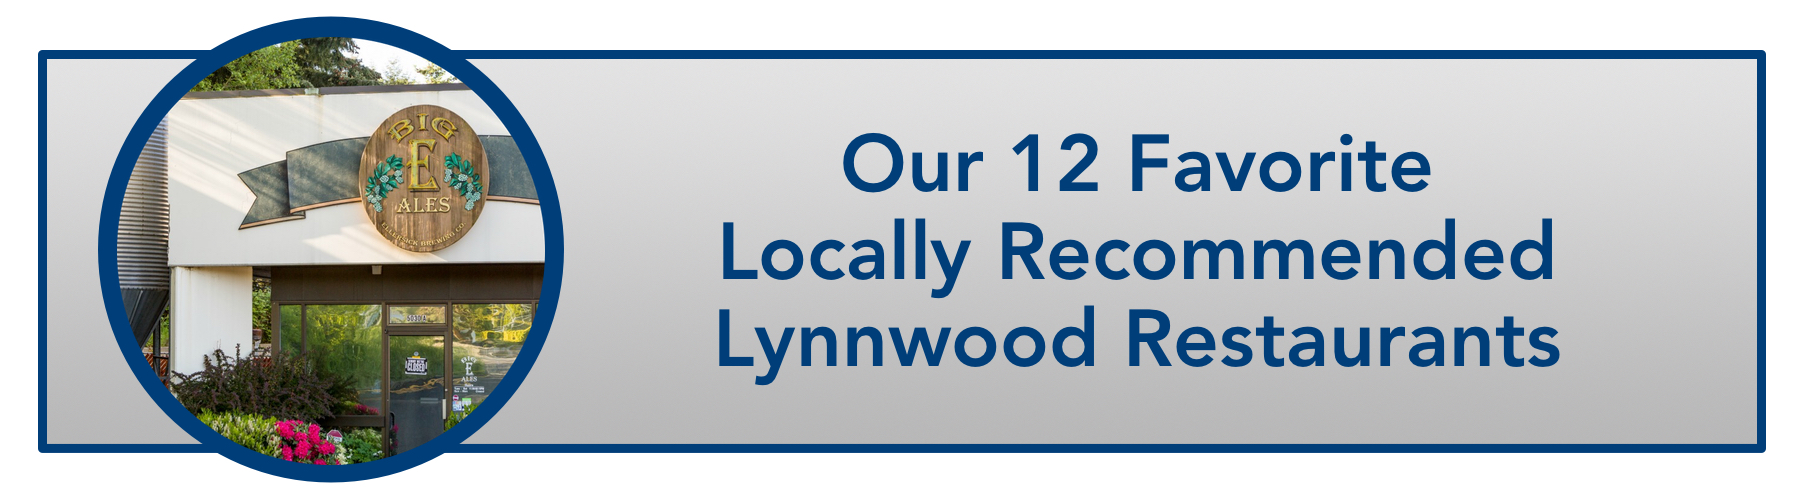 WindermereNorth_Lynnwood_Our 12 Favorite Locally Recommended Lynnwood Restaurants